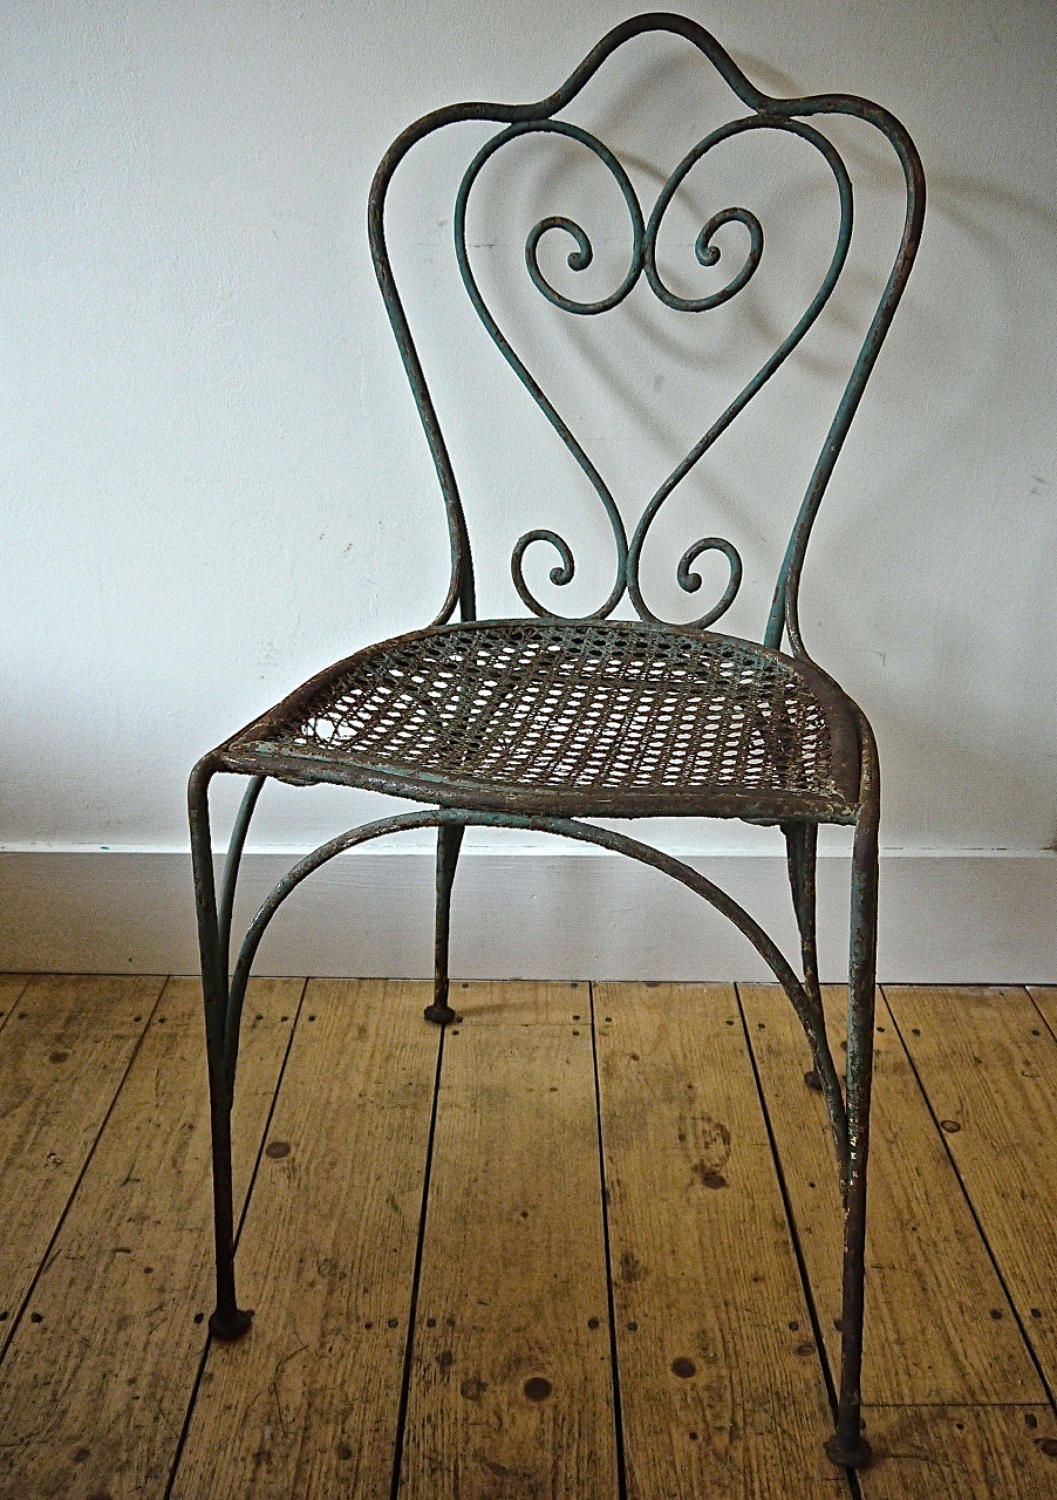 Late 19th century French green garden chair